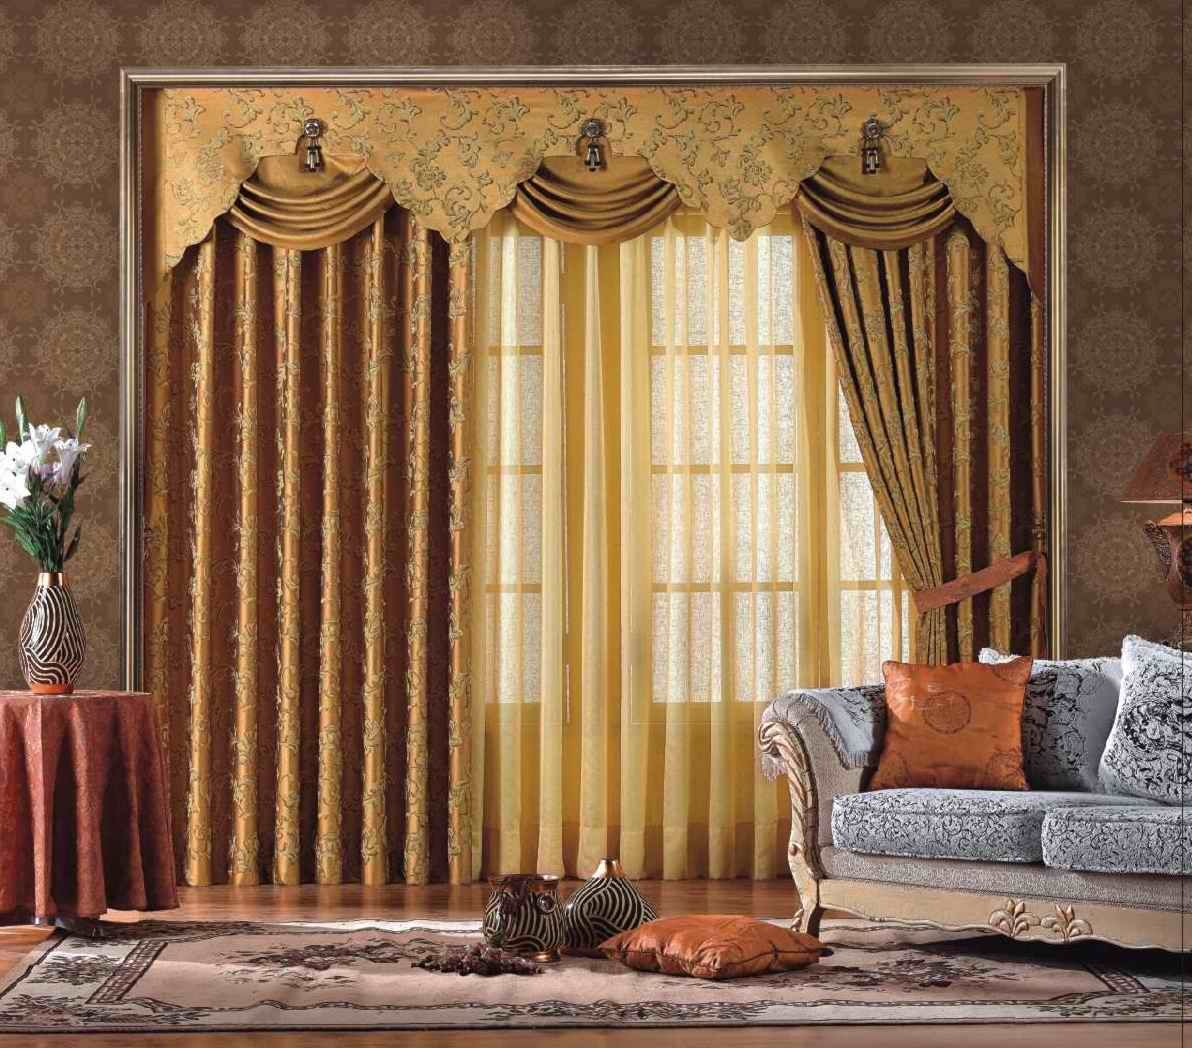 Living Room Curtain Design Magnificent Architecture  Living Room Curtains With Valance Sutntljr Gorgeous Design Decoration